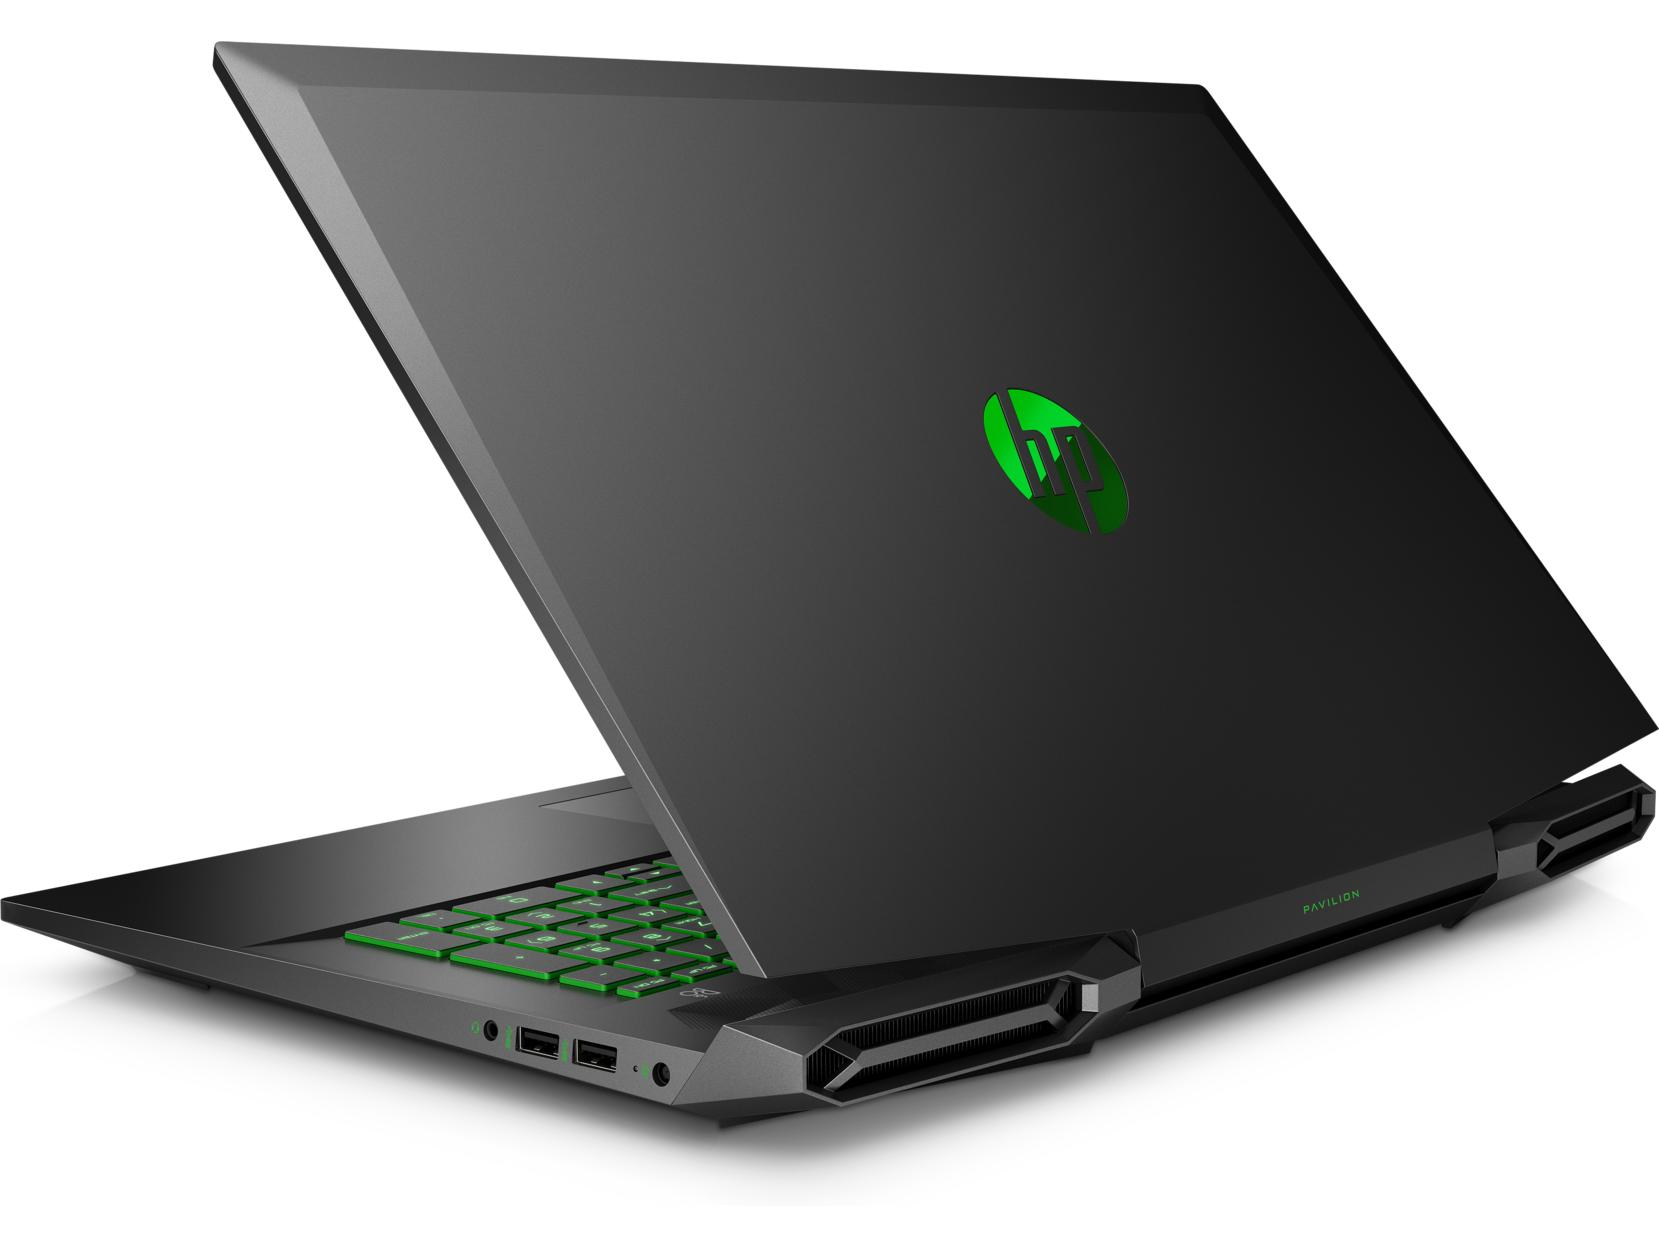 Laptop HP Pavilion Gaming 15-cx0182TX (Core i7-8750H/8GB RAM DDR4/128GB SSD/1TB HDD/15.6